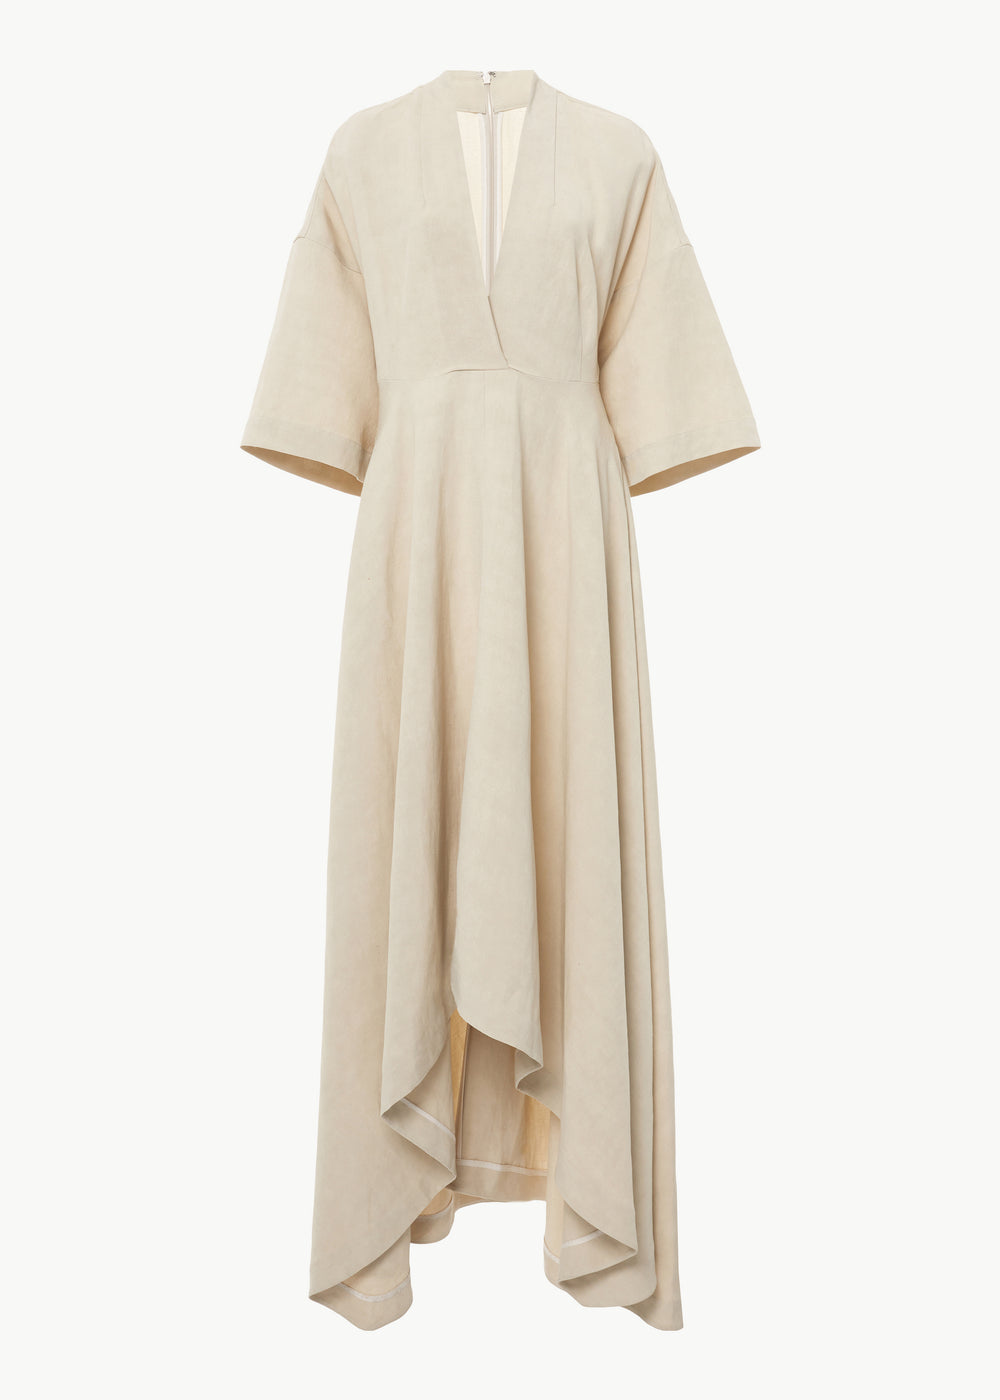 Surplice Dress in Linen - Taupe - CO